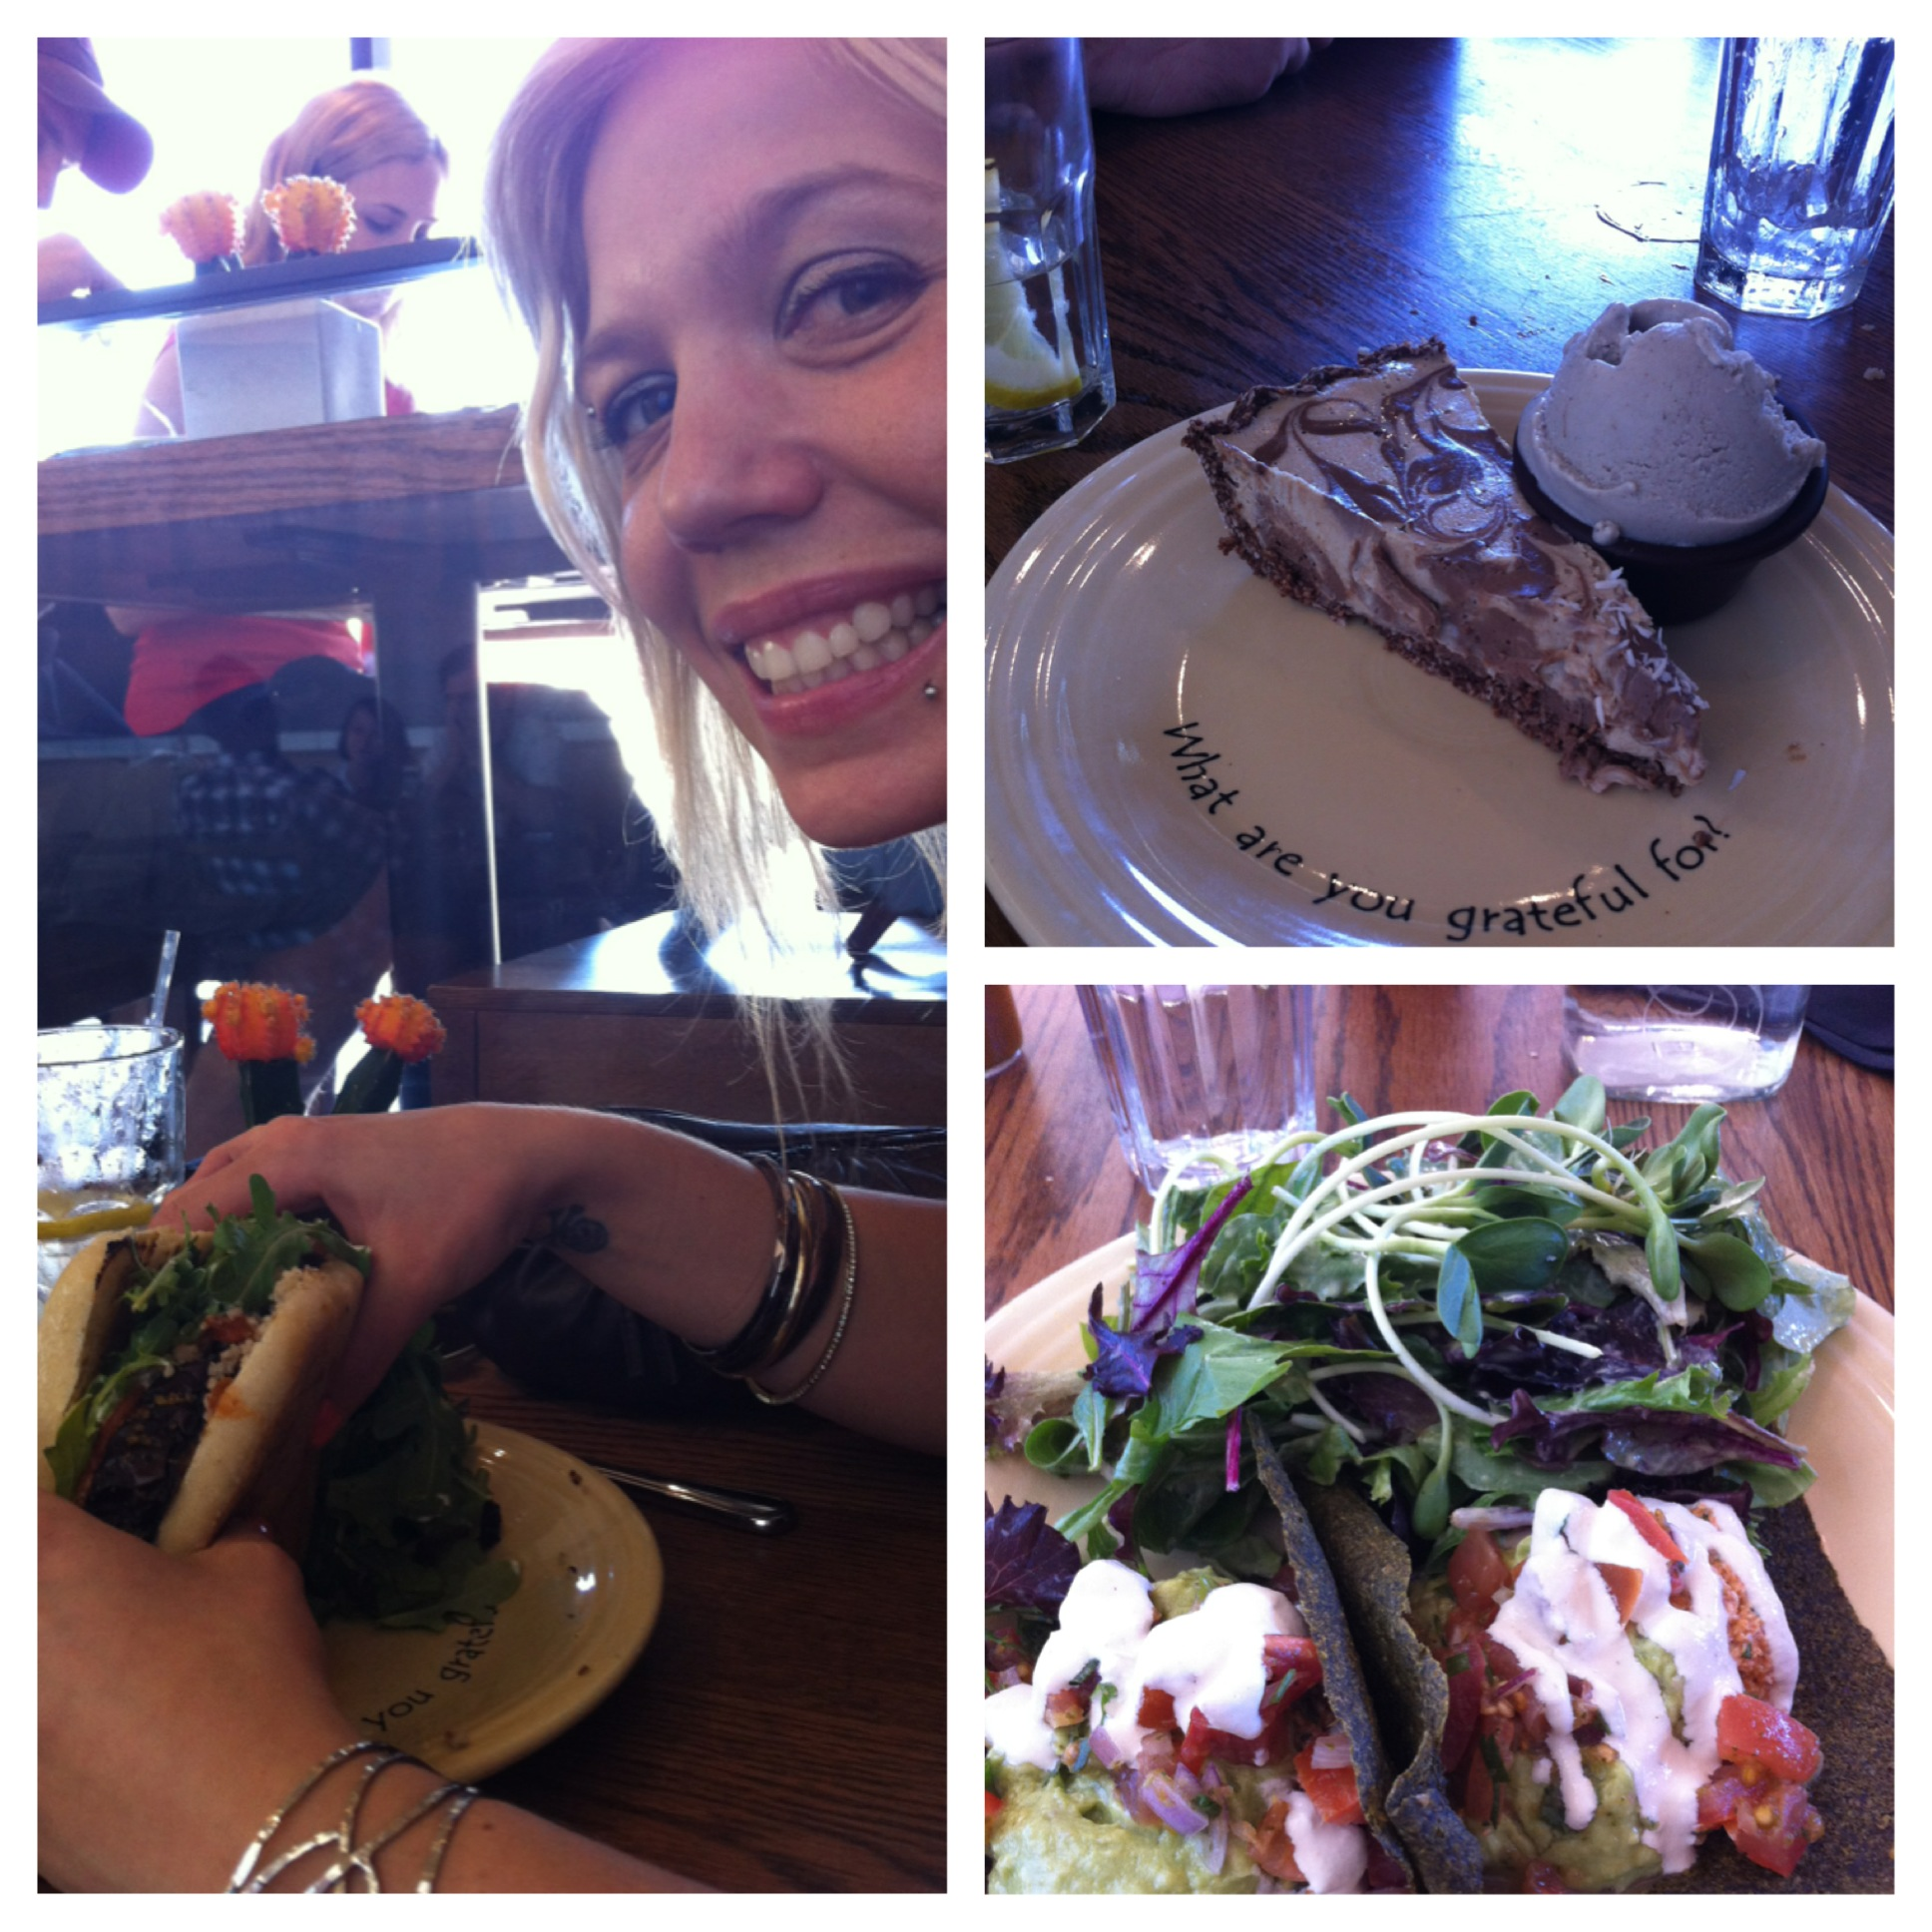 That place was the bomb diggity! One round of Raw Tacos, one Mushroom  Veggie Burger, and one Raw Coconut Cream Pie a la mode later…